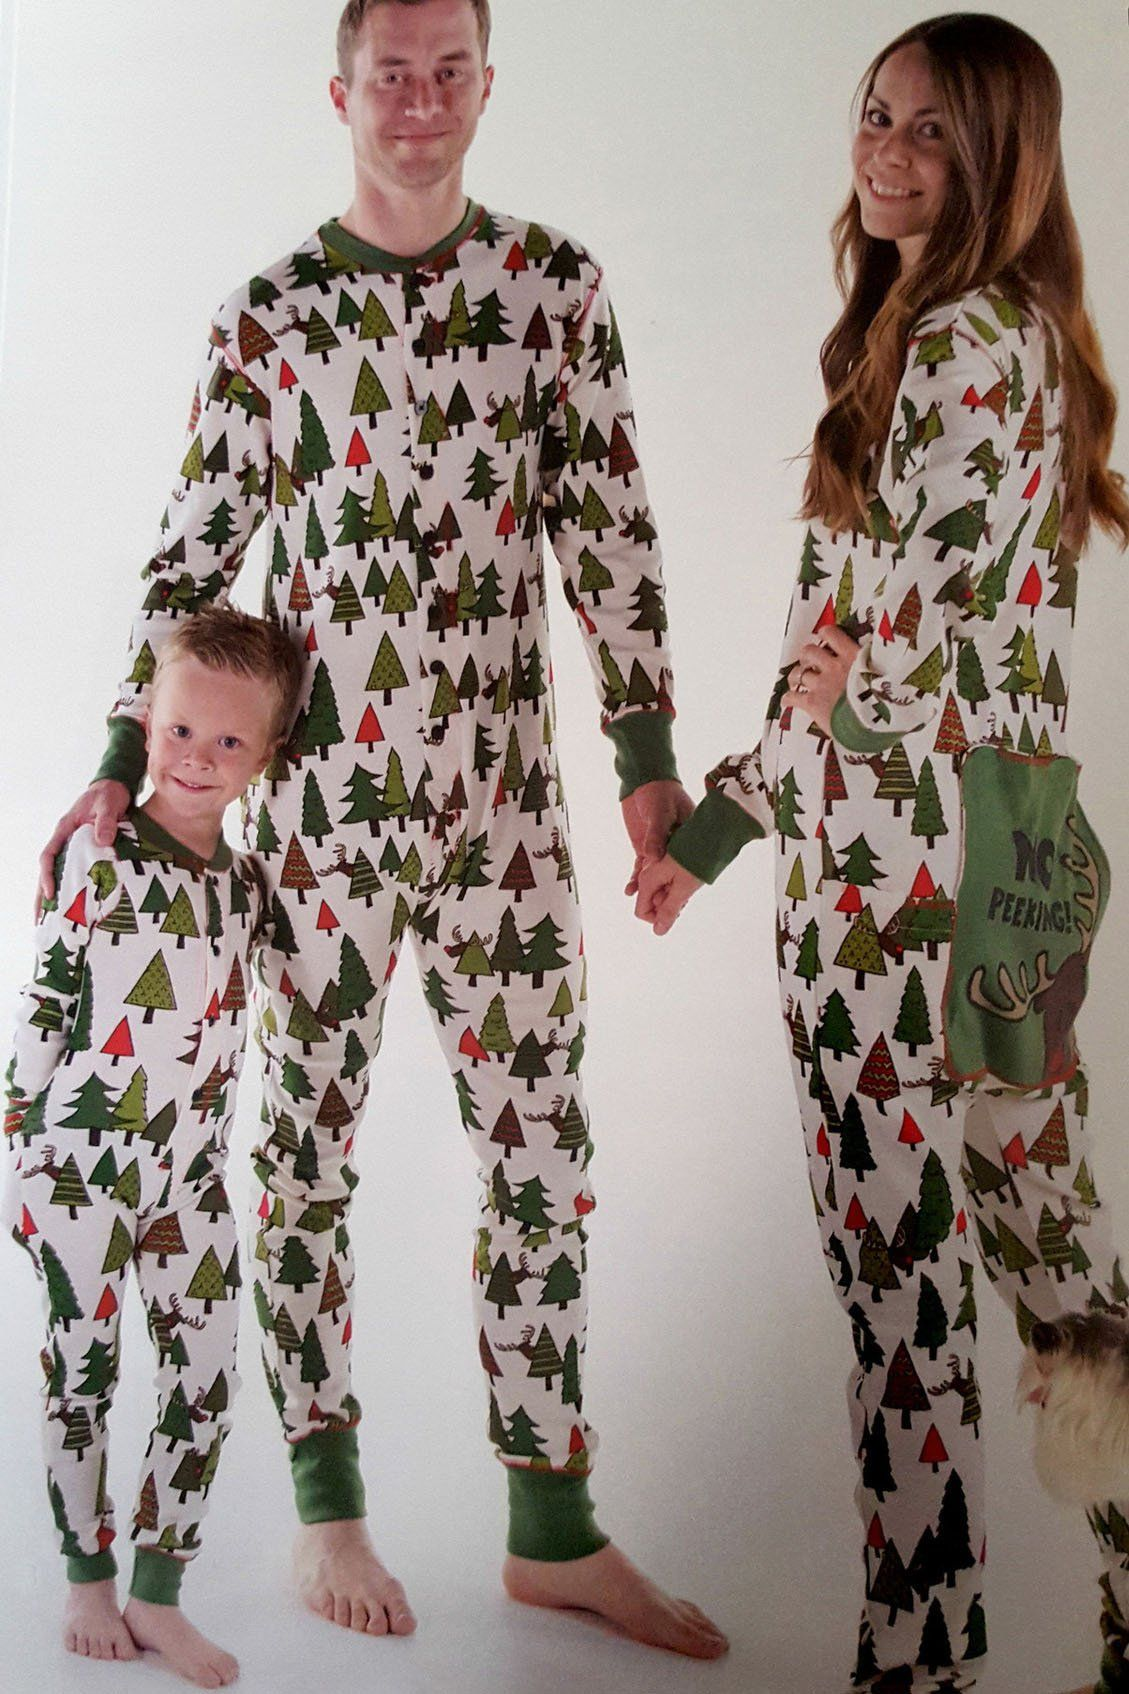 Reindeer Christmas Trees Family Matching Pajamas Set For Xmas ... 618608e42